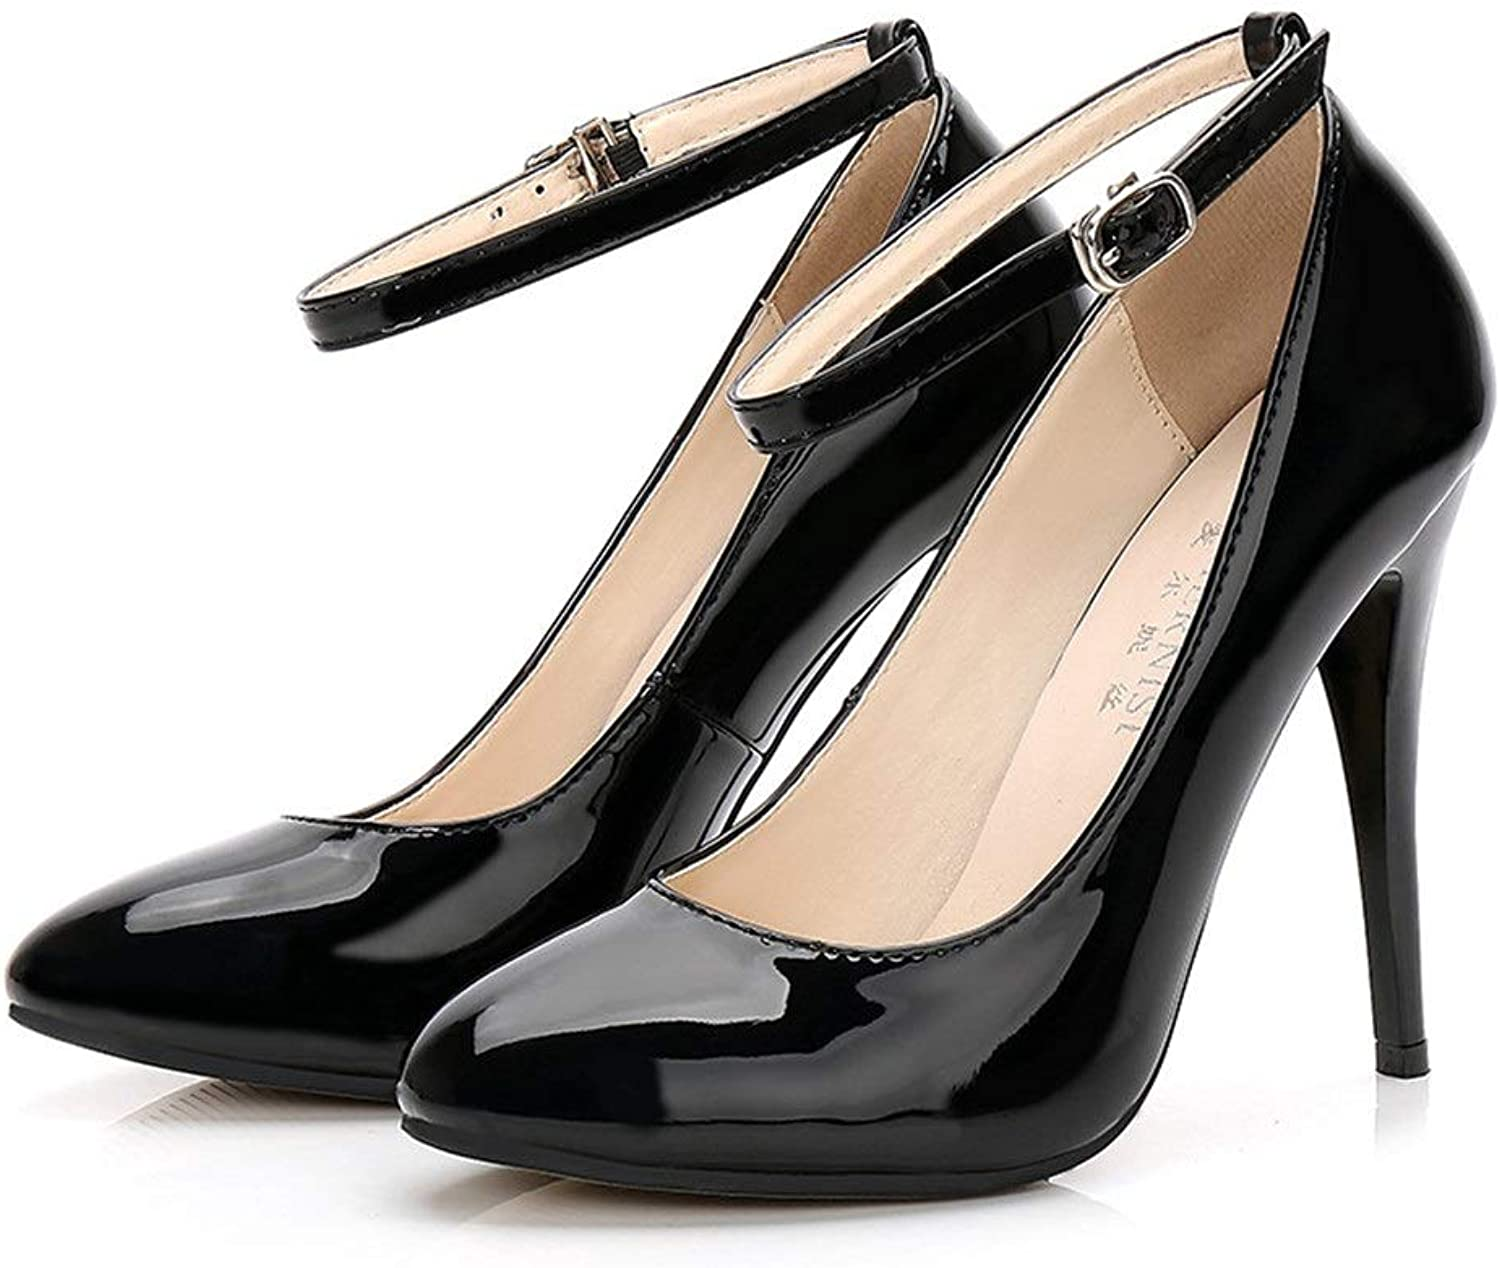 Women's Black Sexy High Heels Closed Leather Ankle Buckle Classic Court Wedding shoes (12cm)